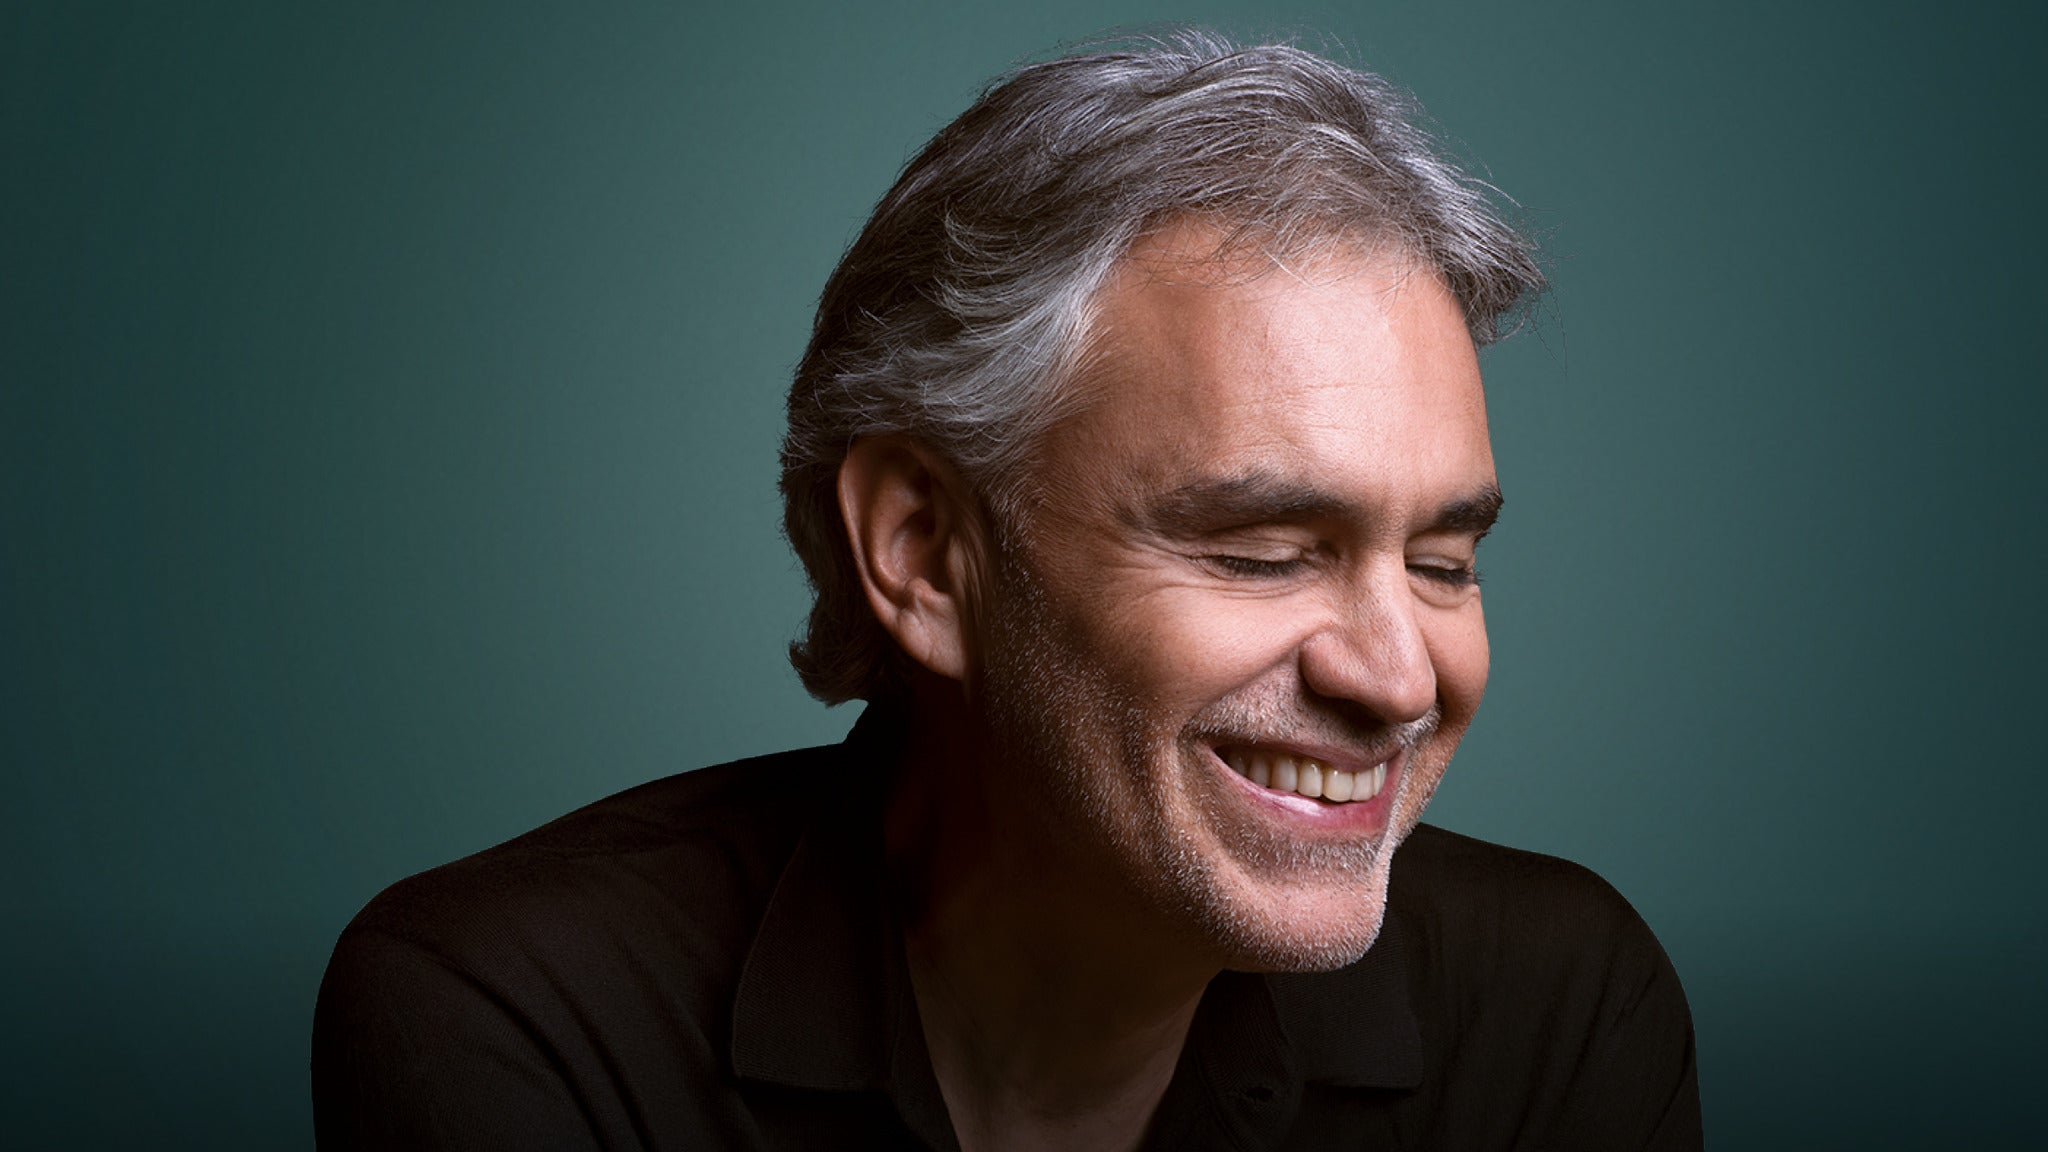 Andrea Bocelli at Enterprise Center